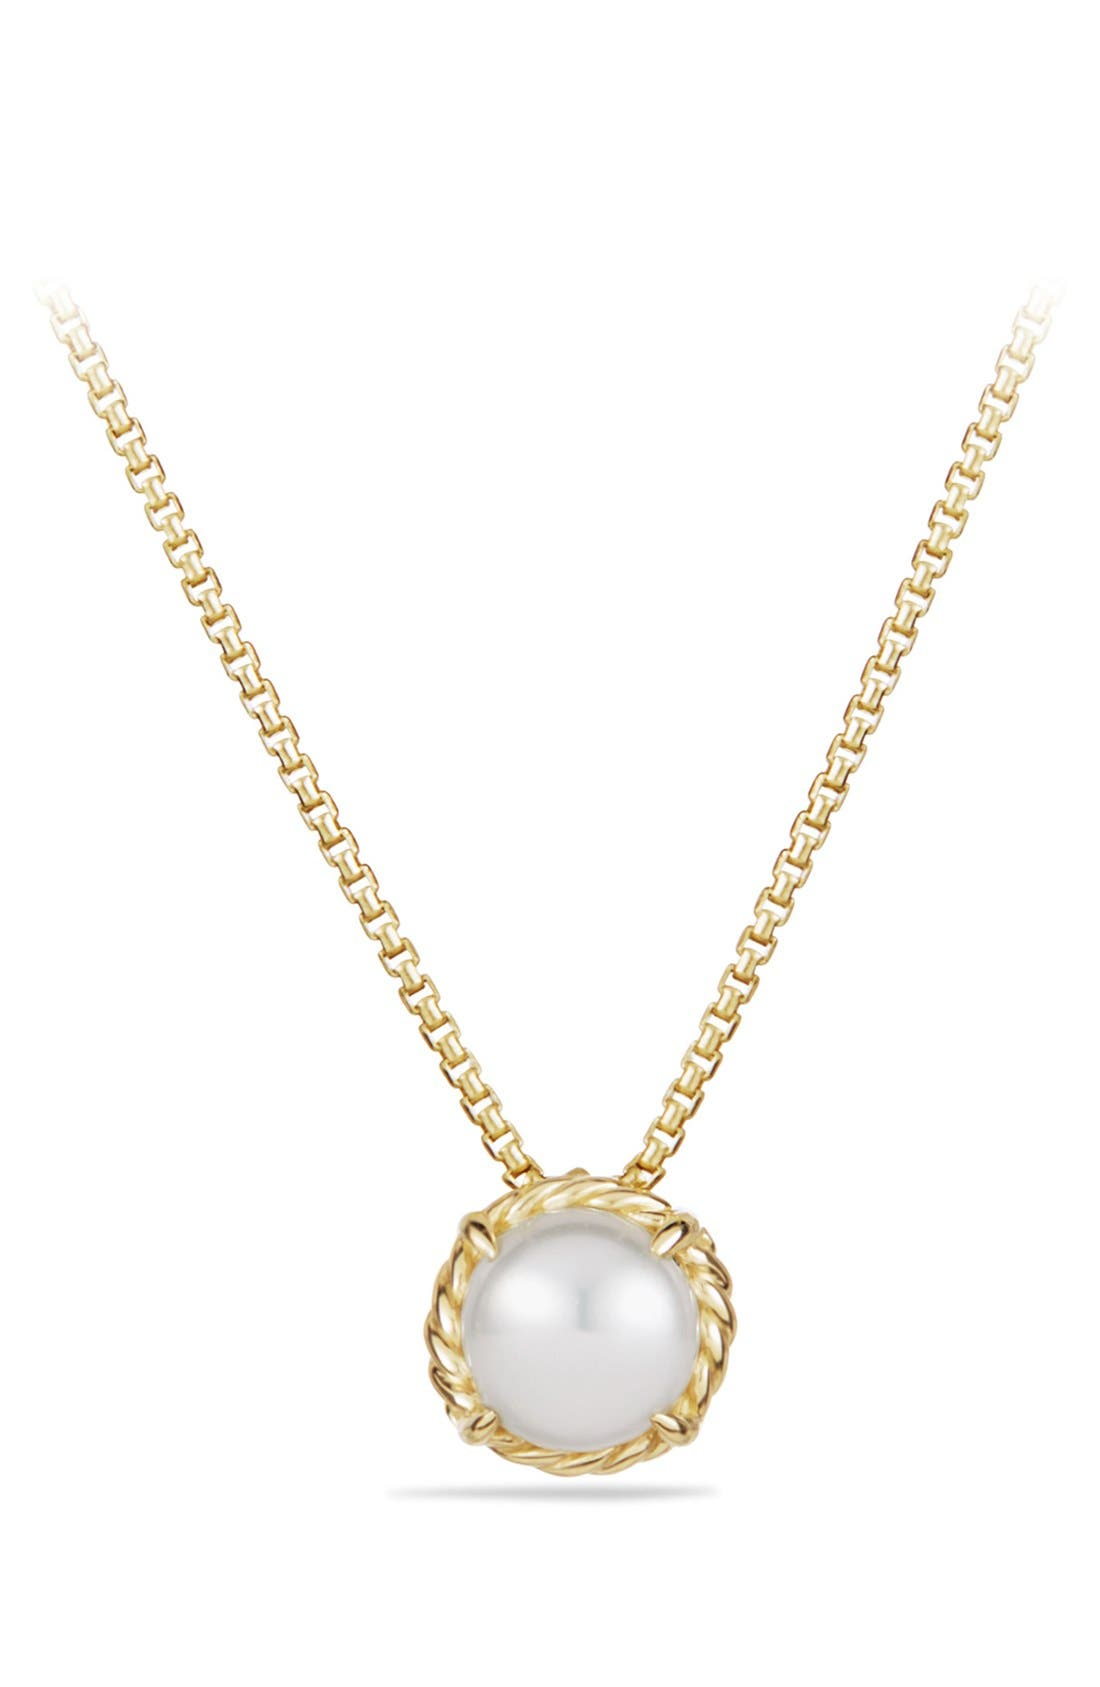 DAVID YURMAN Châtelaine Pendant Necklace with Freshwater Pearl in 18K Gold